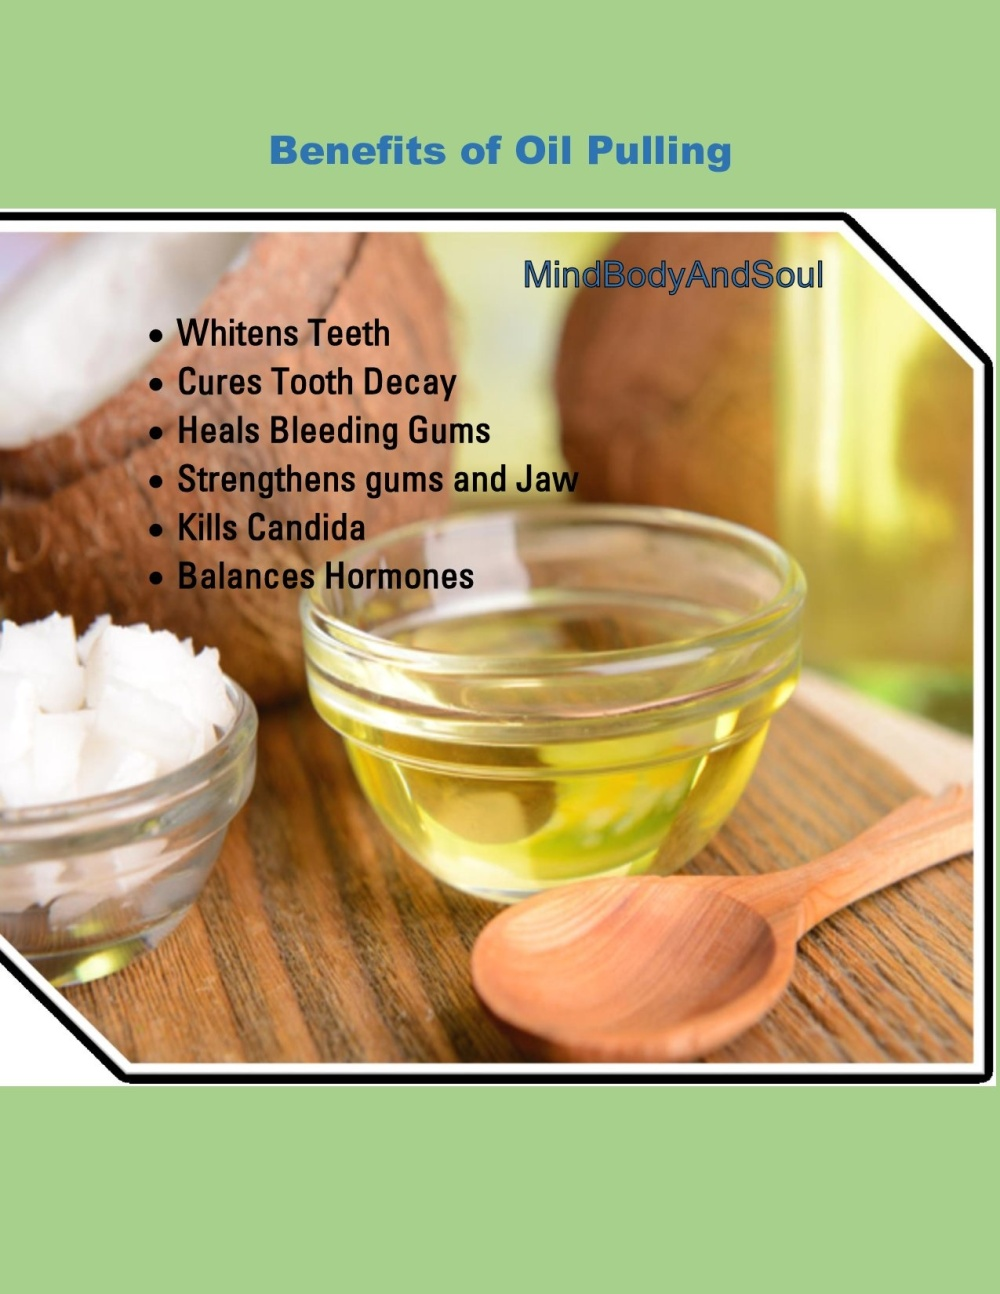 benefits_of_oil_pulling_1